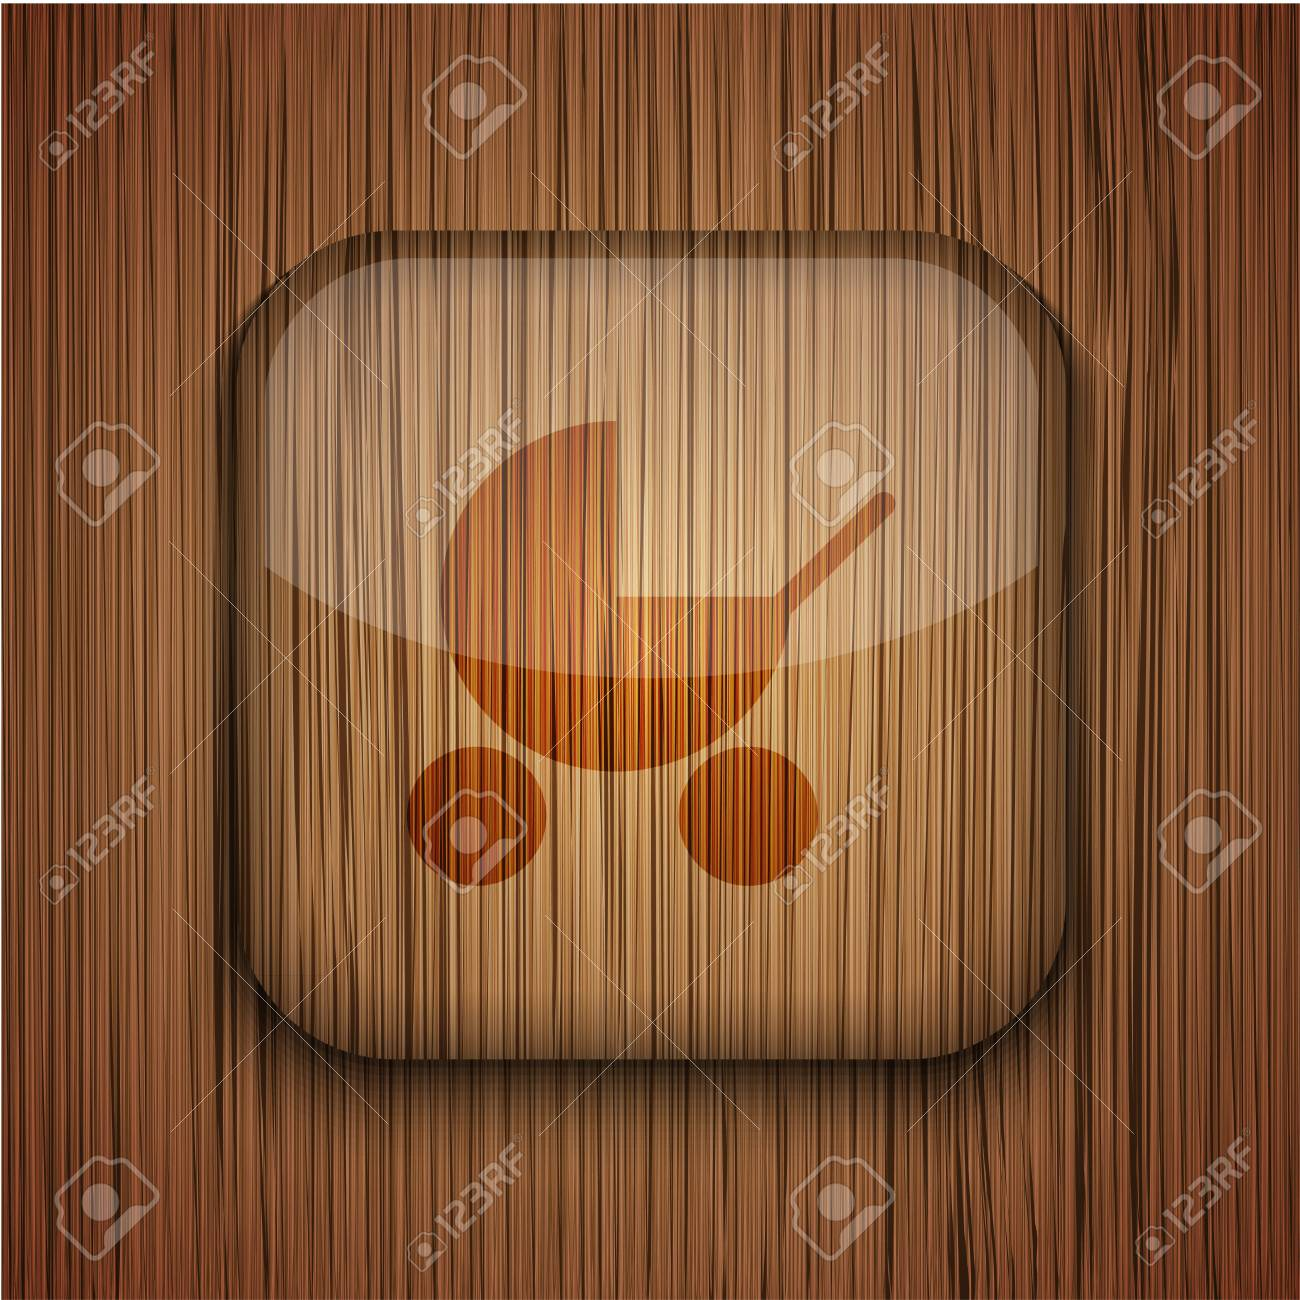 wooden app icon on wooden background. Stock Vector - 17681812